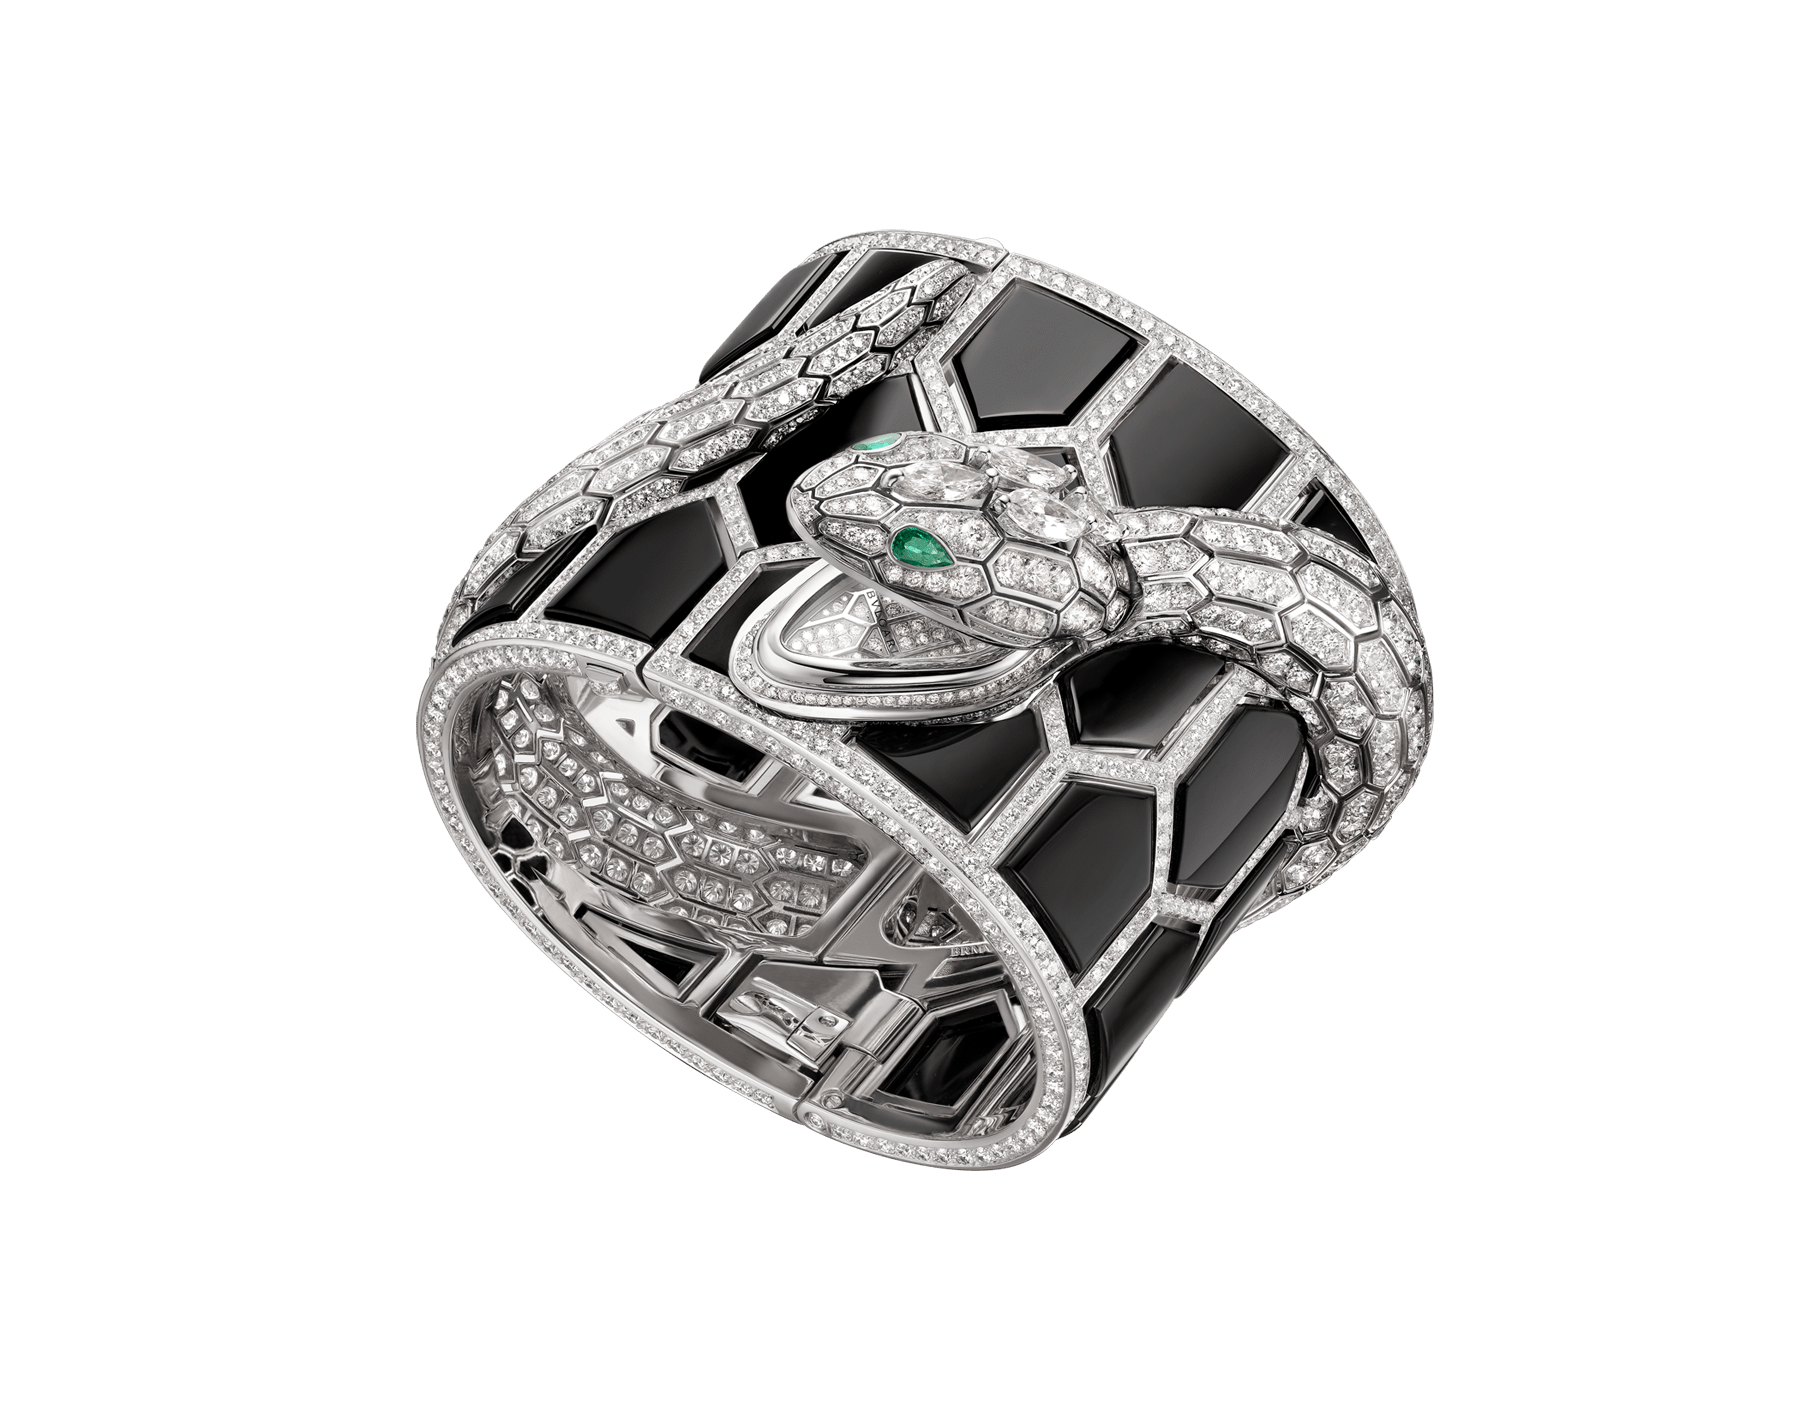 Serpenti Misteriosi Secret Watch with 18 kt white gold handcuff set with onyx elements and brilliant-cut diamonds, body of a snake in 18 kt white gold set with brilliant-cut and marquise-shaped diamonds, and pear-shaped emerald eyes 102985 image 1